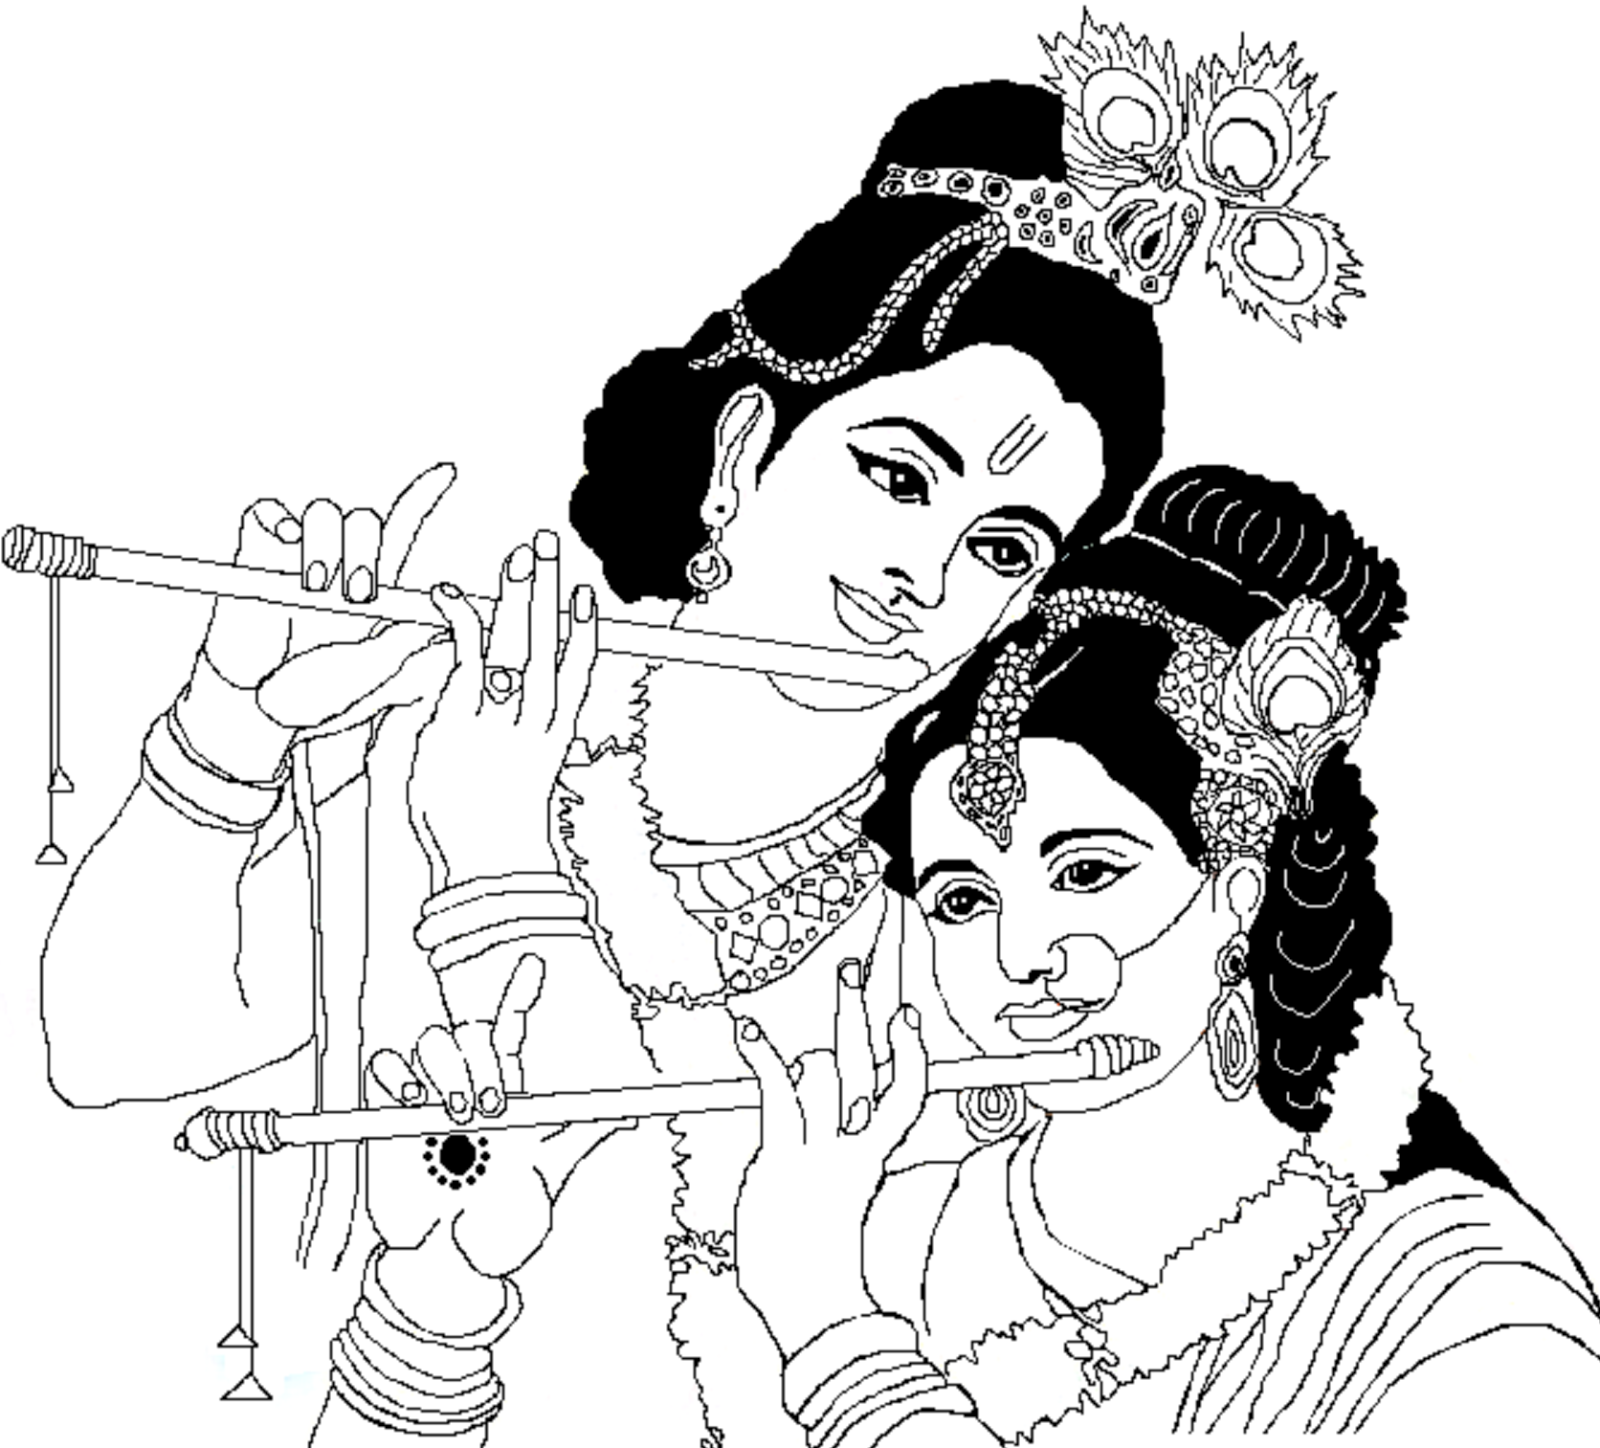 coloring pages on god krishna - photo#23